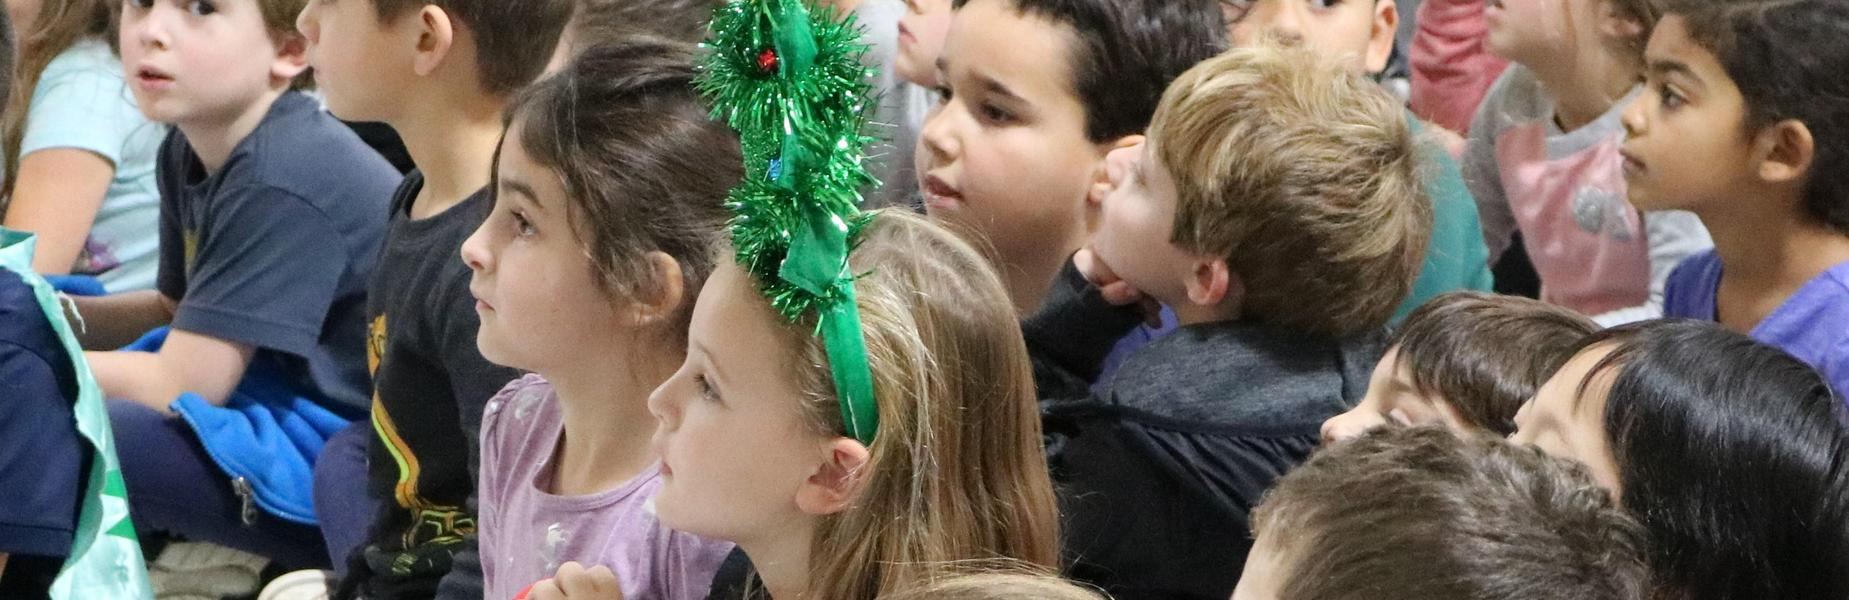 Photo of kindergartners listening to holiday concert; one girl wearing a christmas tree headband.